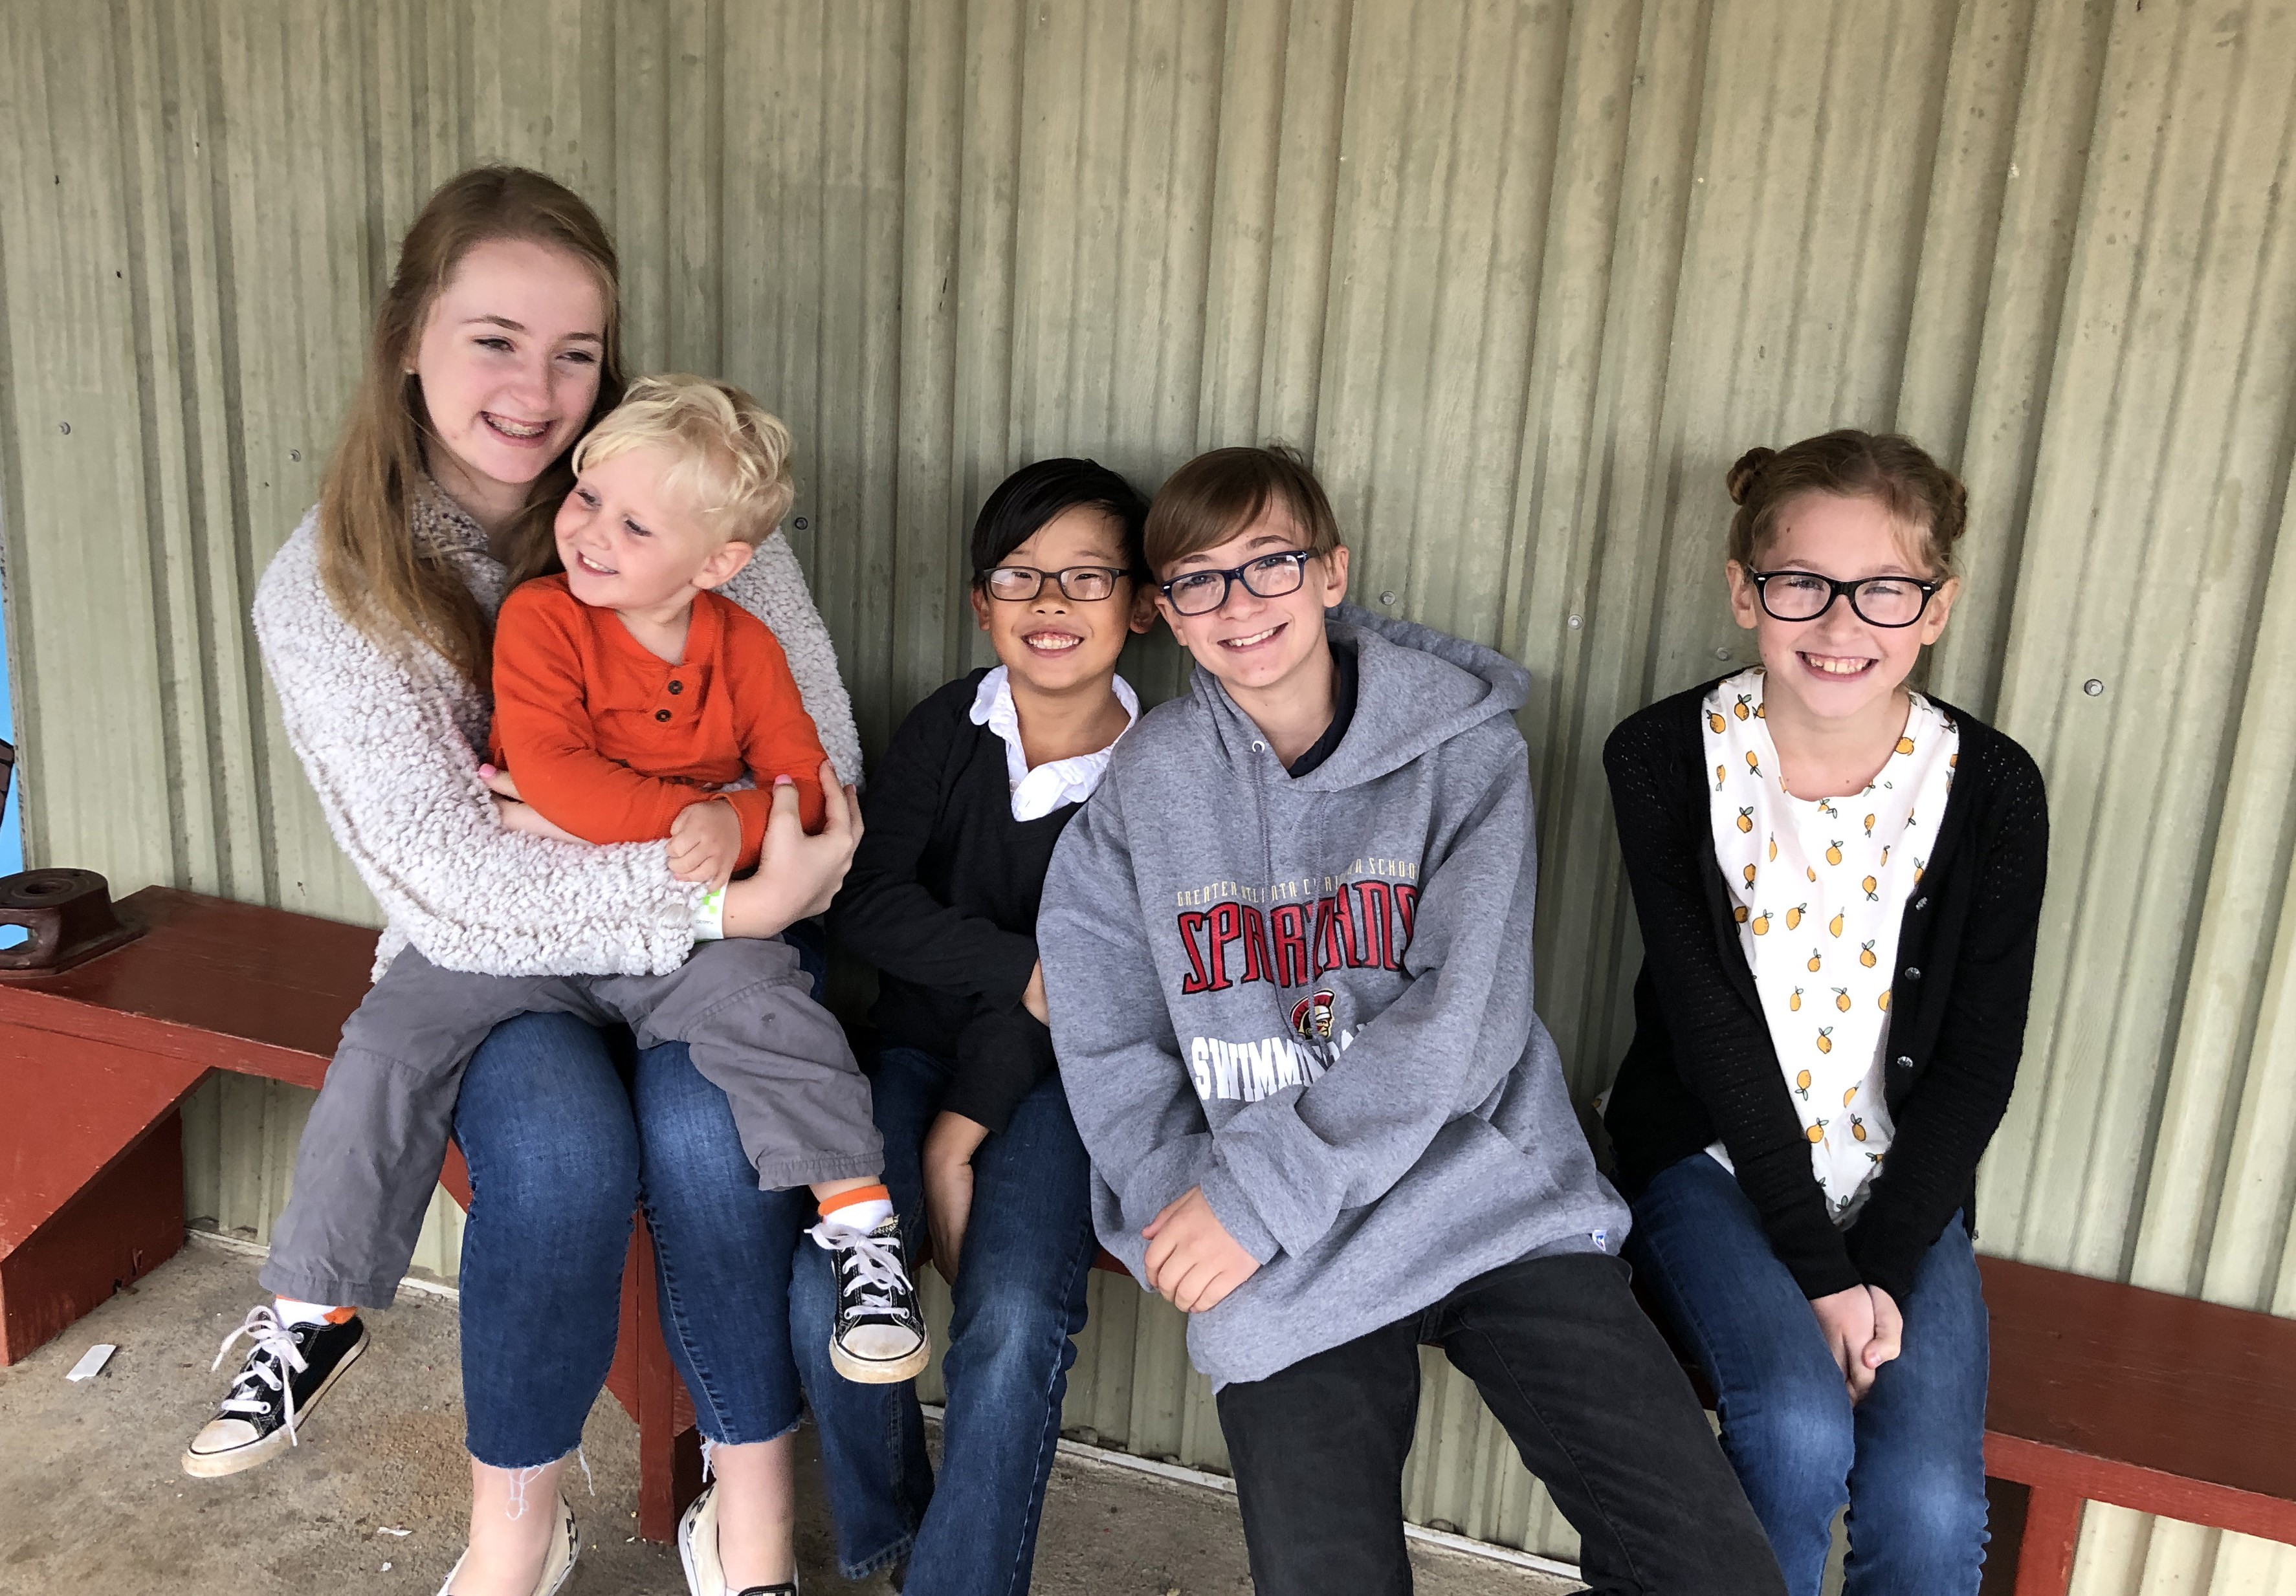 Our five kids sitting and smiling at the camera.